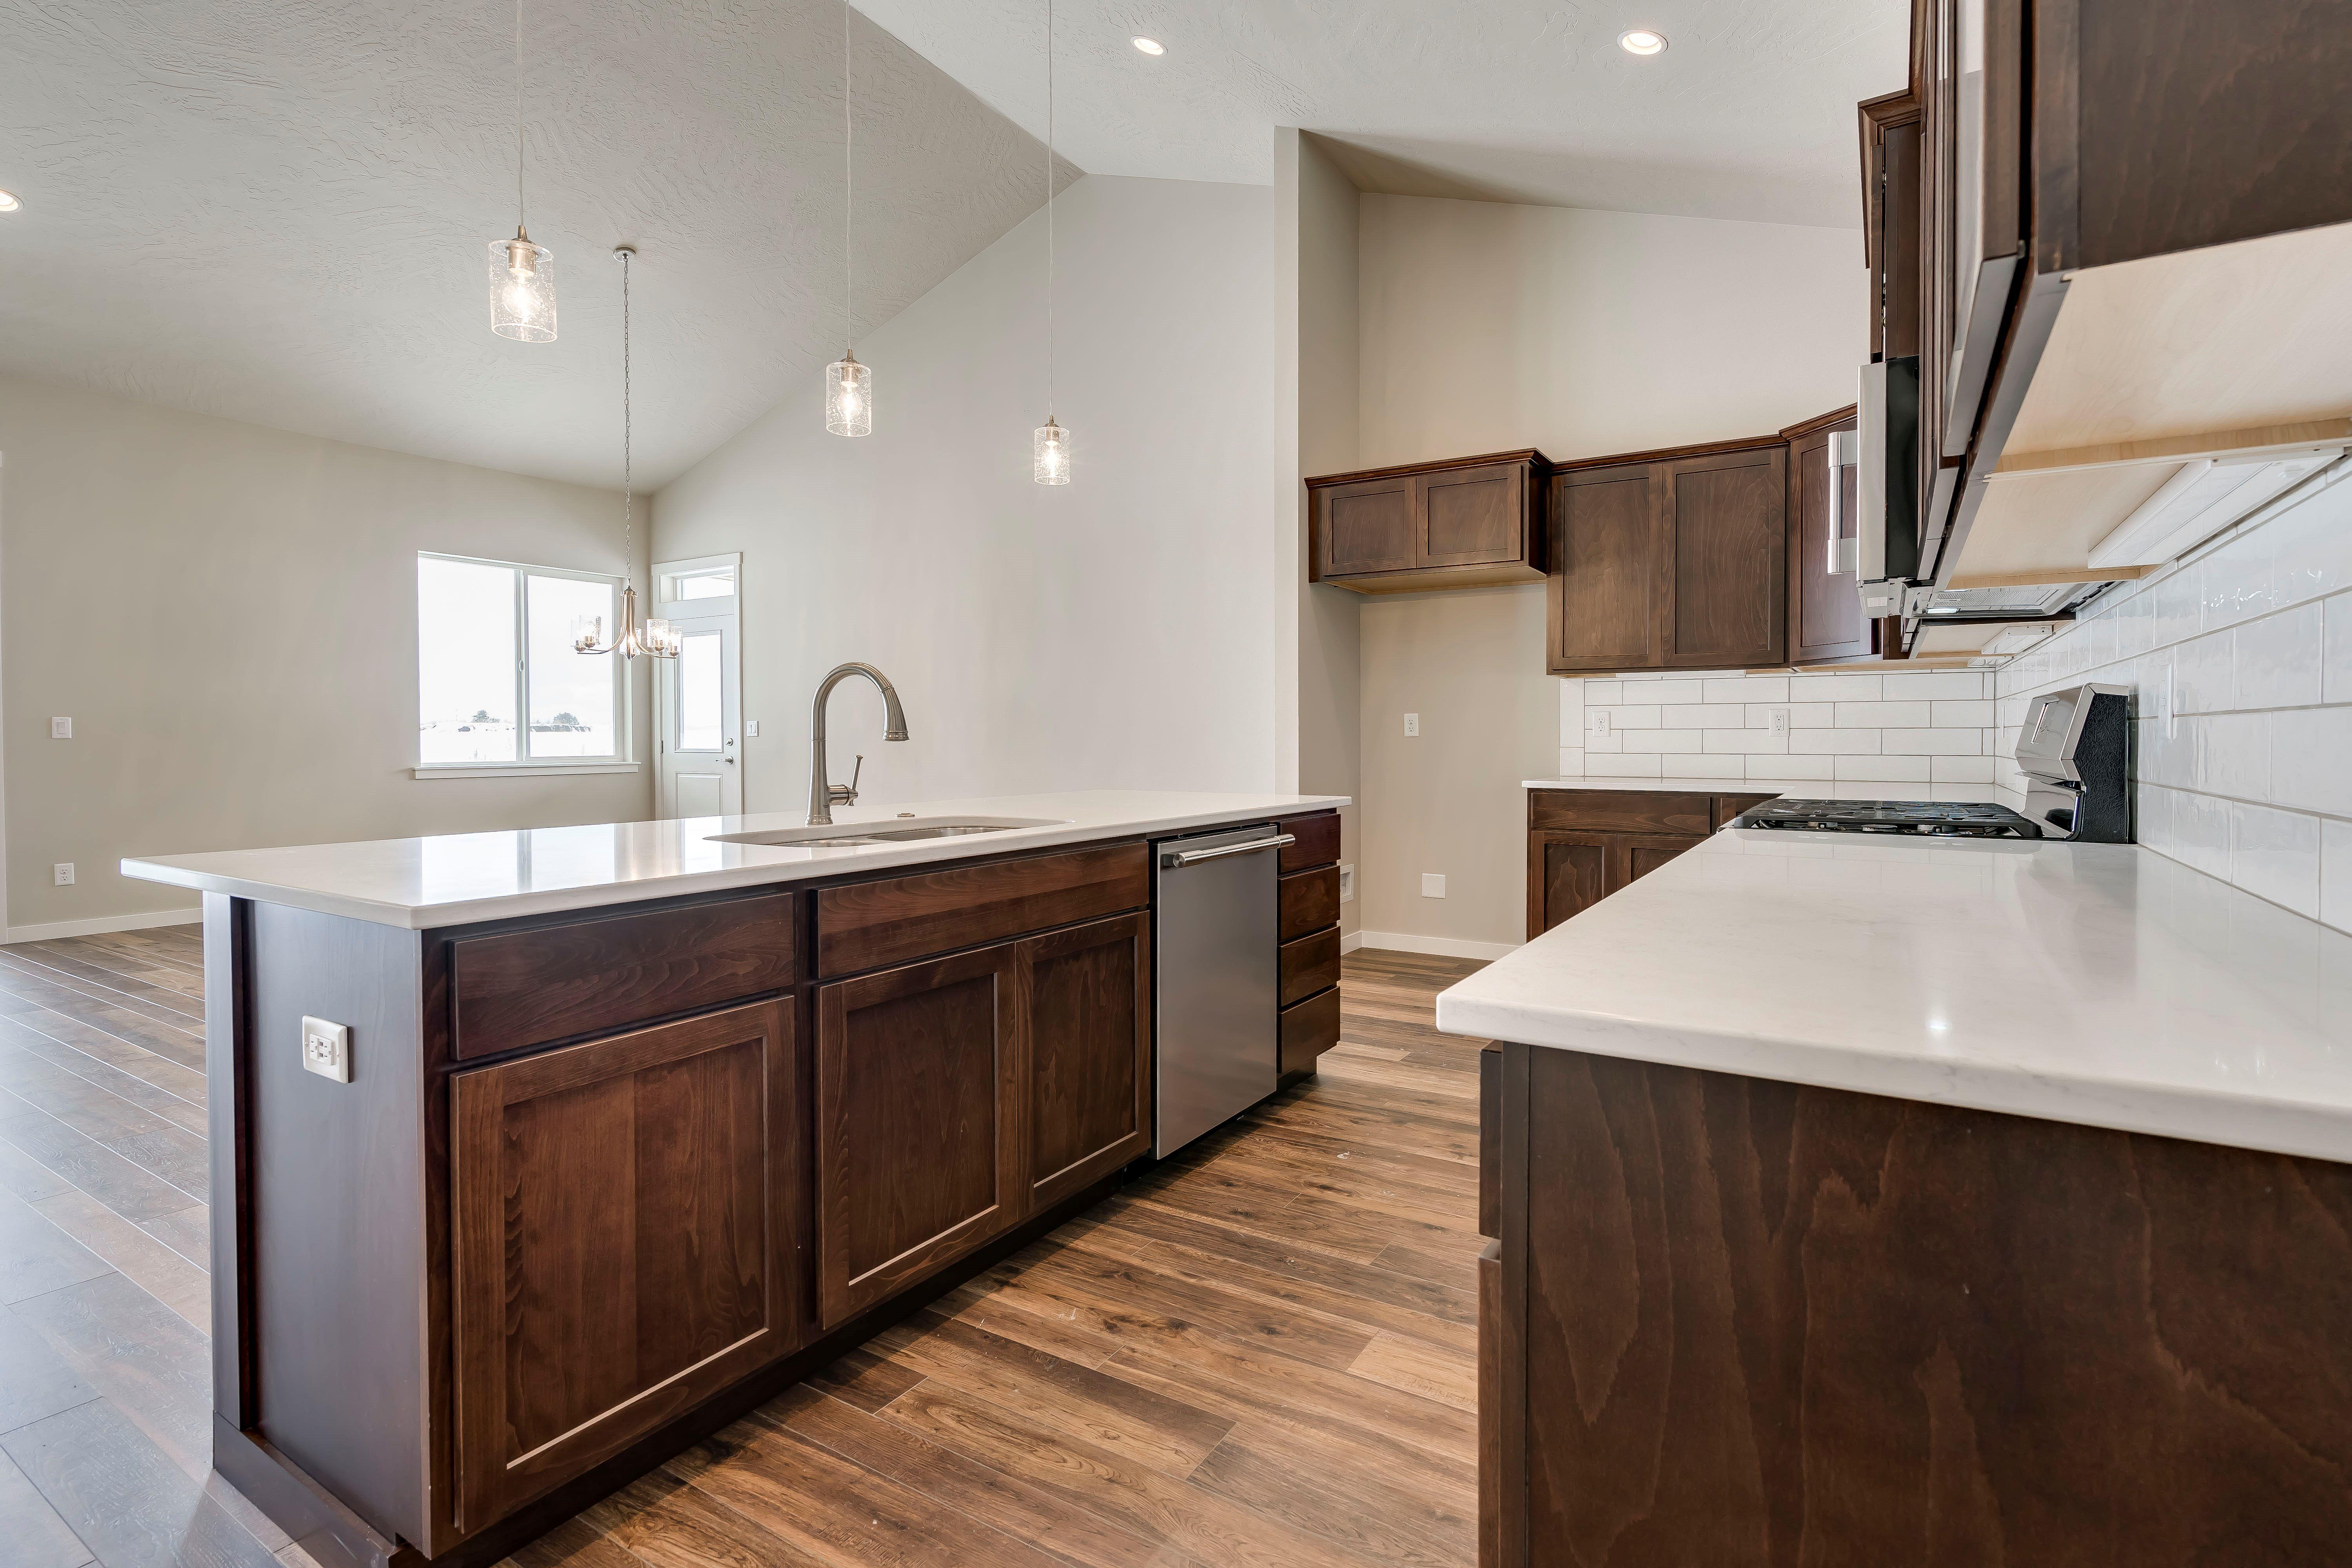 Kitchen featured in The Teton By Architerra Homes in Spokane-Couer d Alene, ID